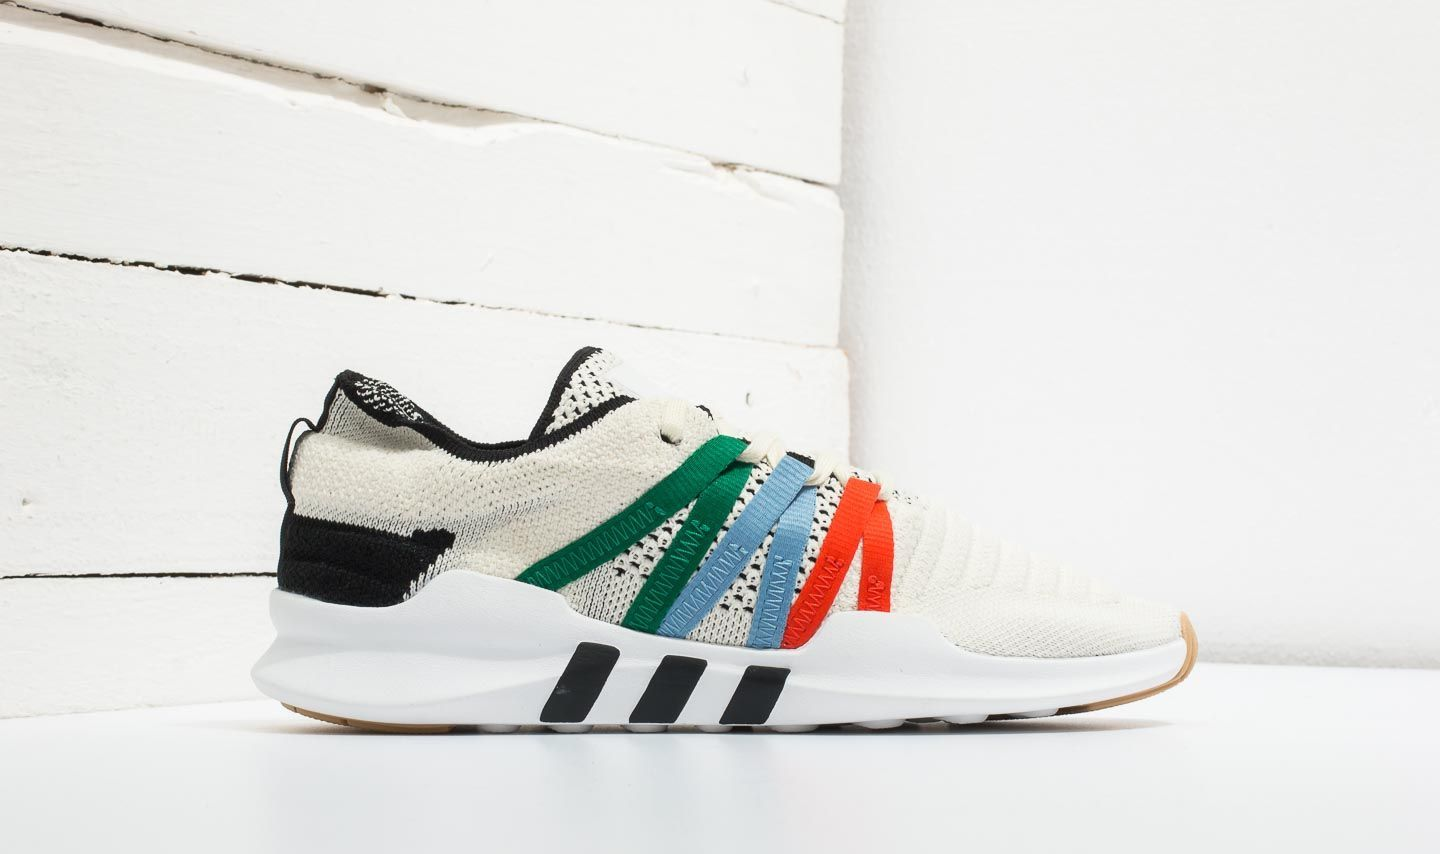 promo code bb29a fc88c adidas EQT Racing ADV Primeknit W Cream White Bold Orange Core Black au  meilleur